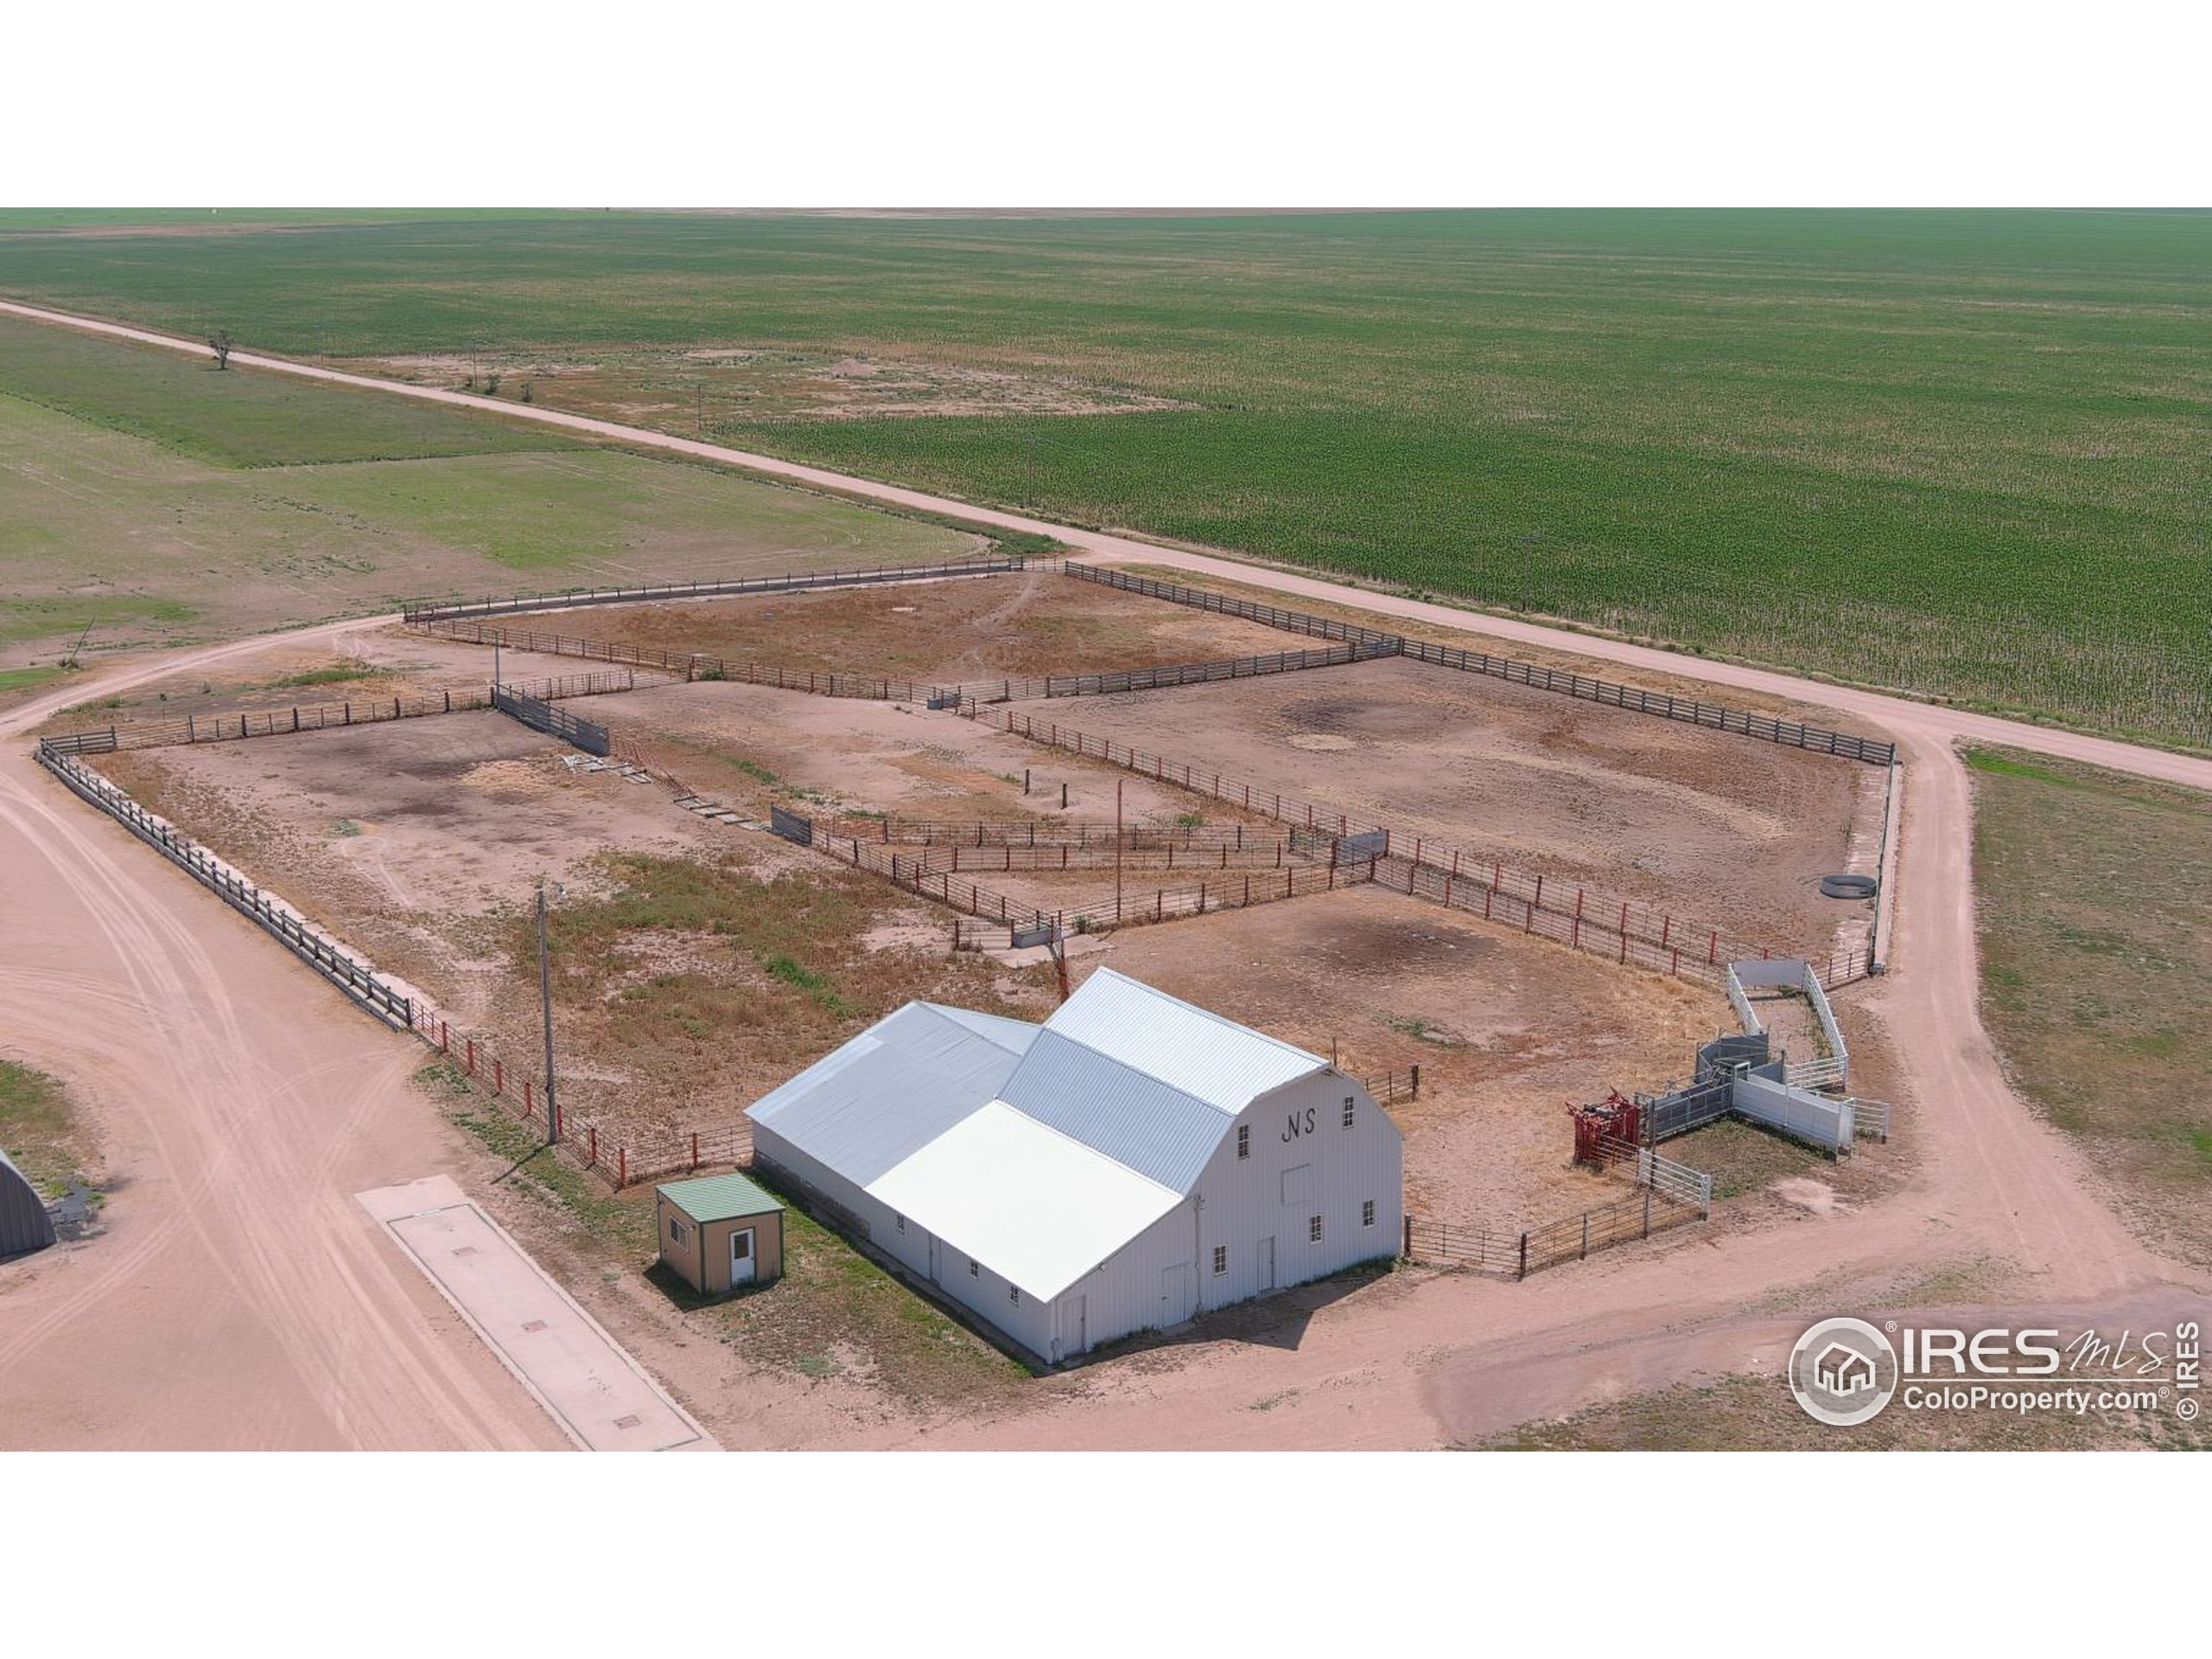 Barn and corrals with feed bunk